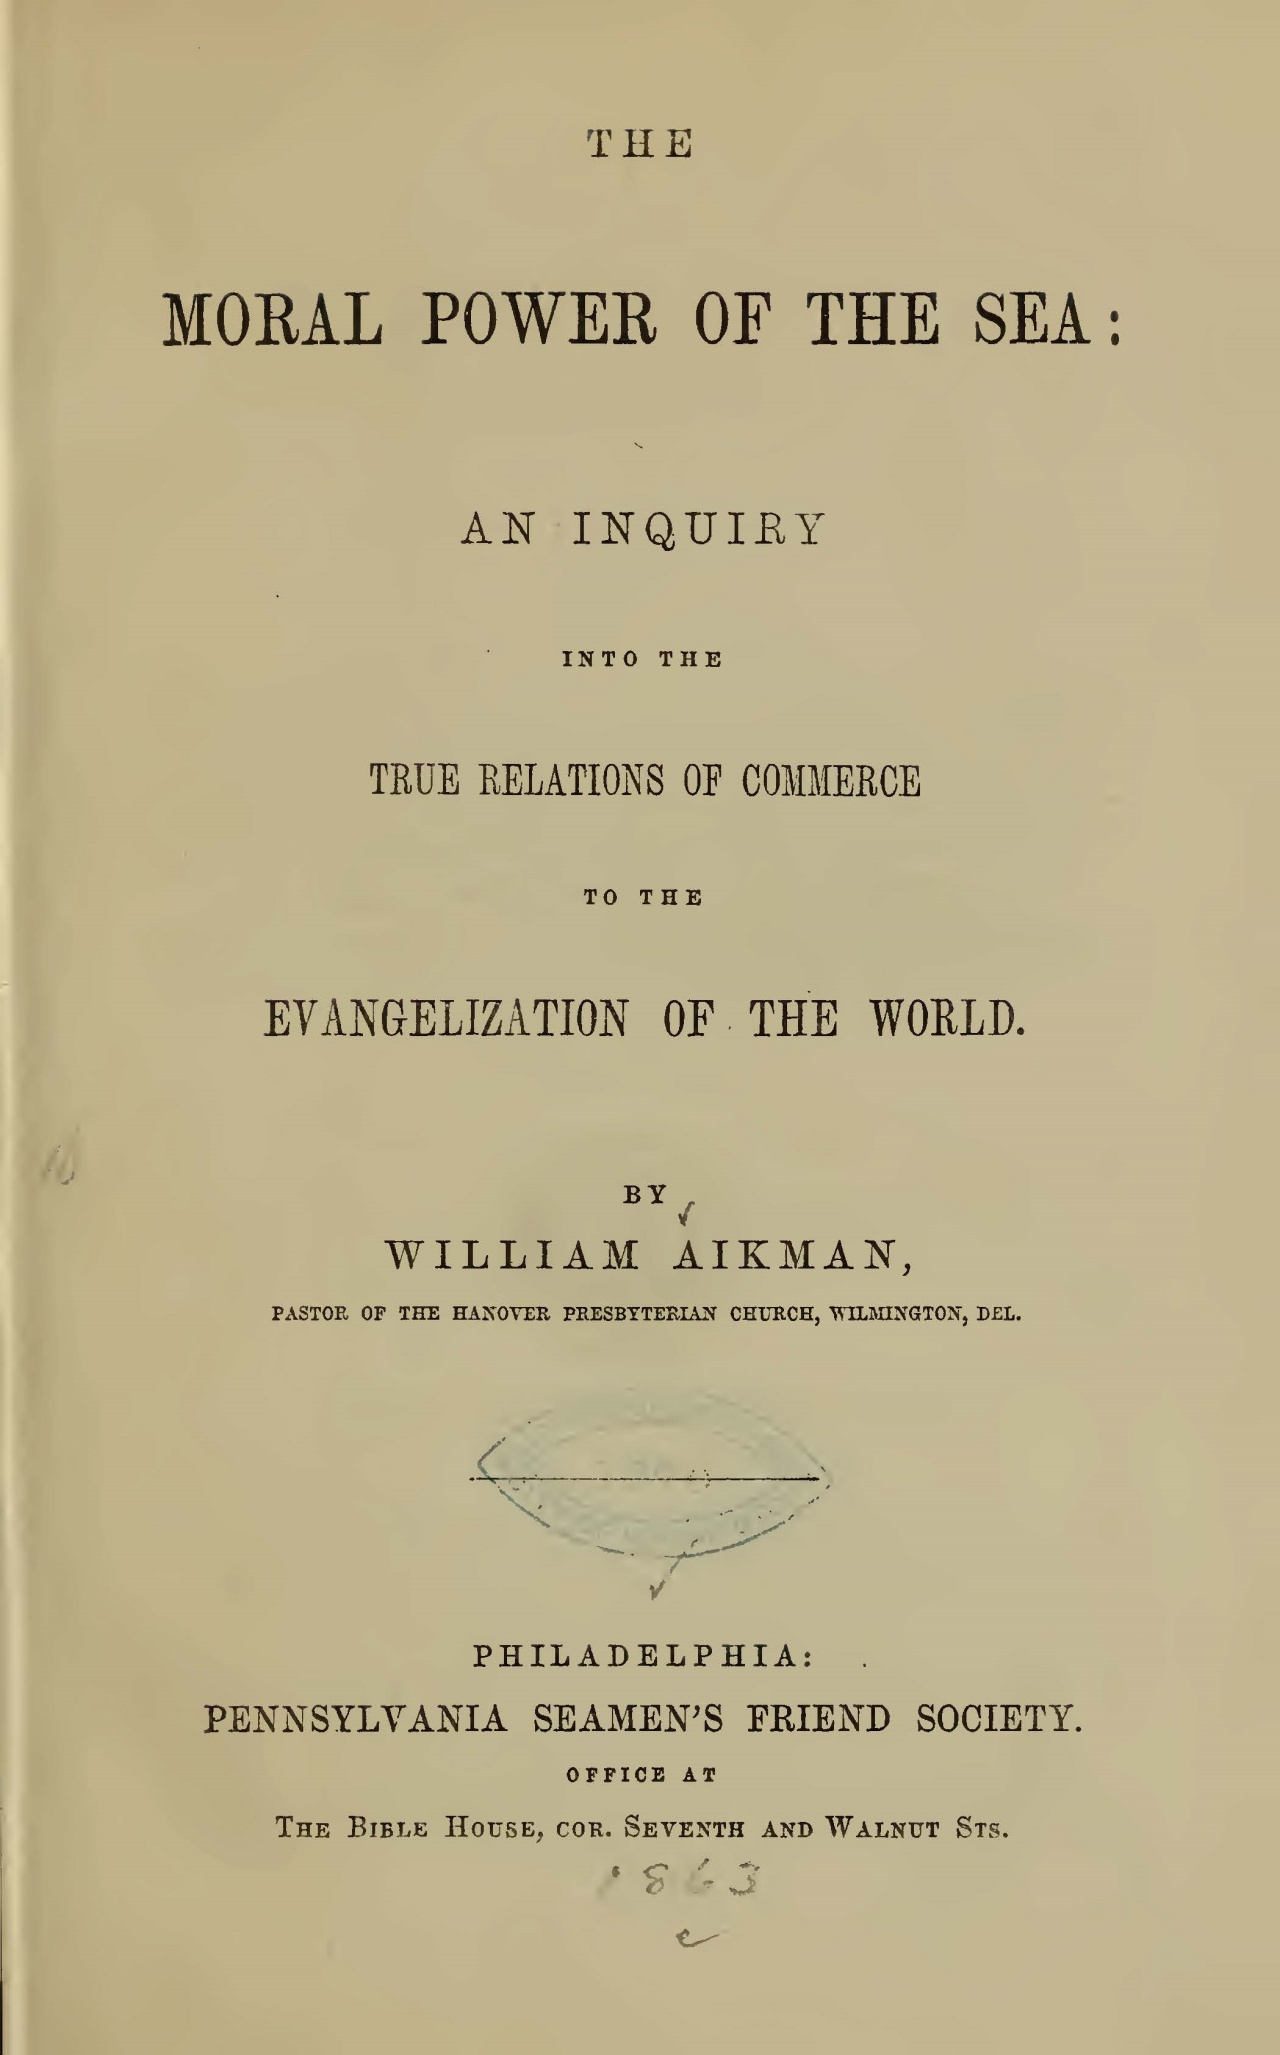 Aikman, William, The Moral Power of the Sea Title Page.jpg